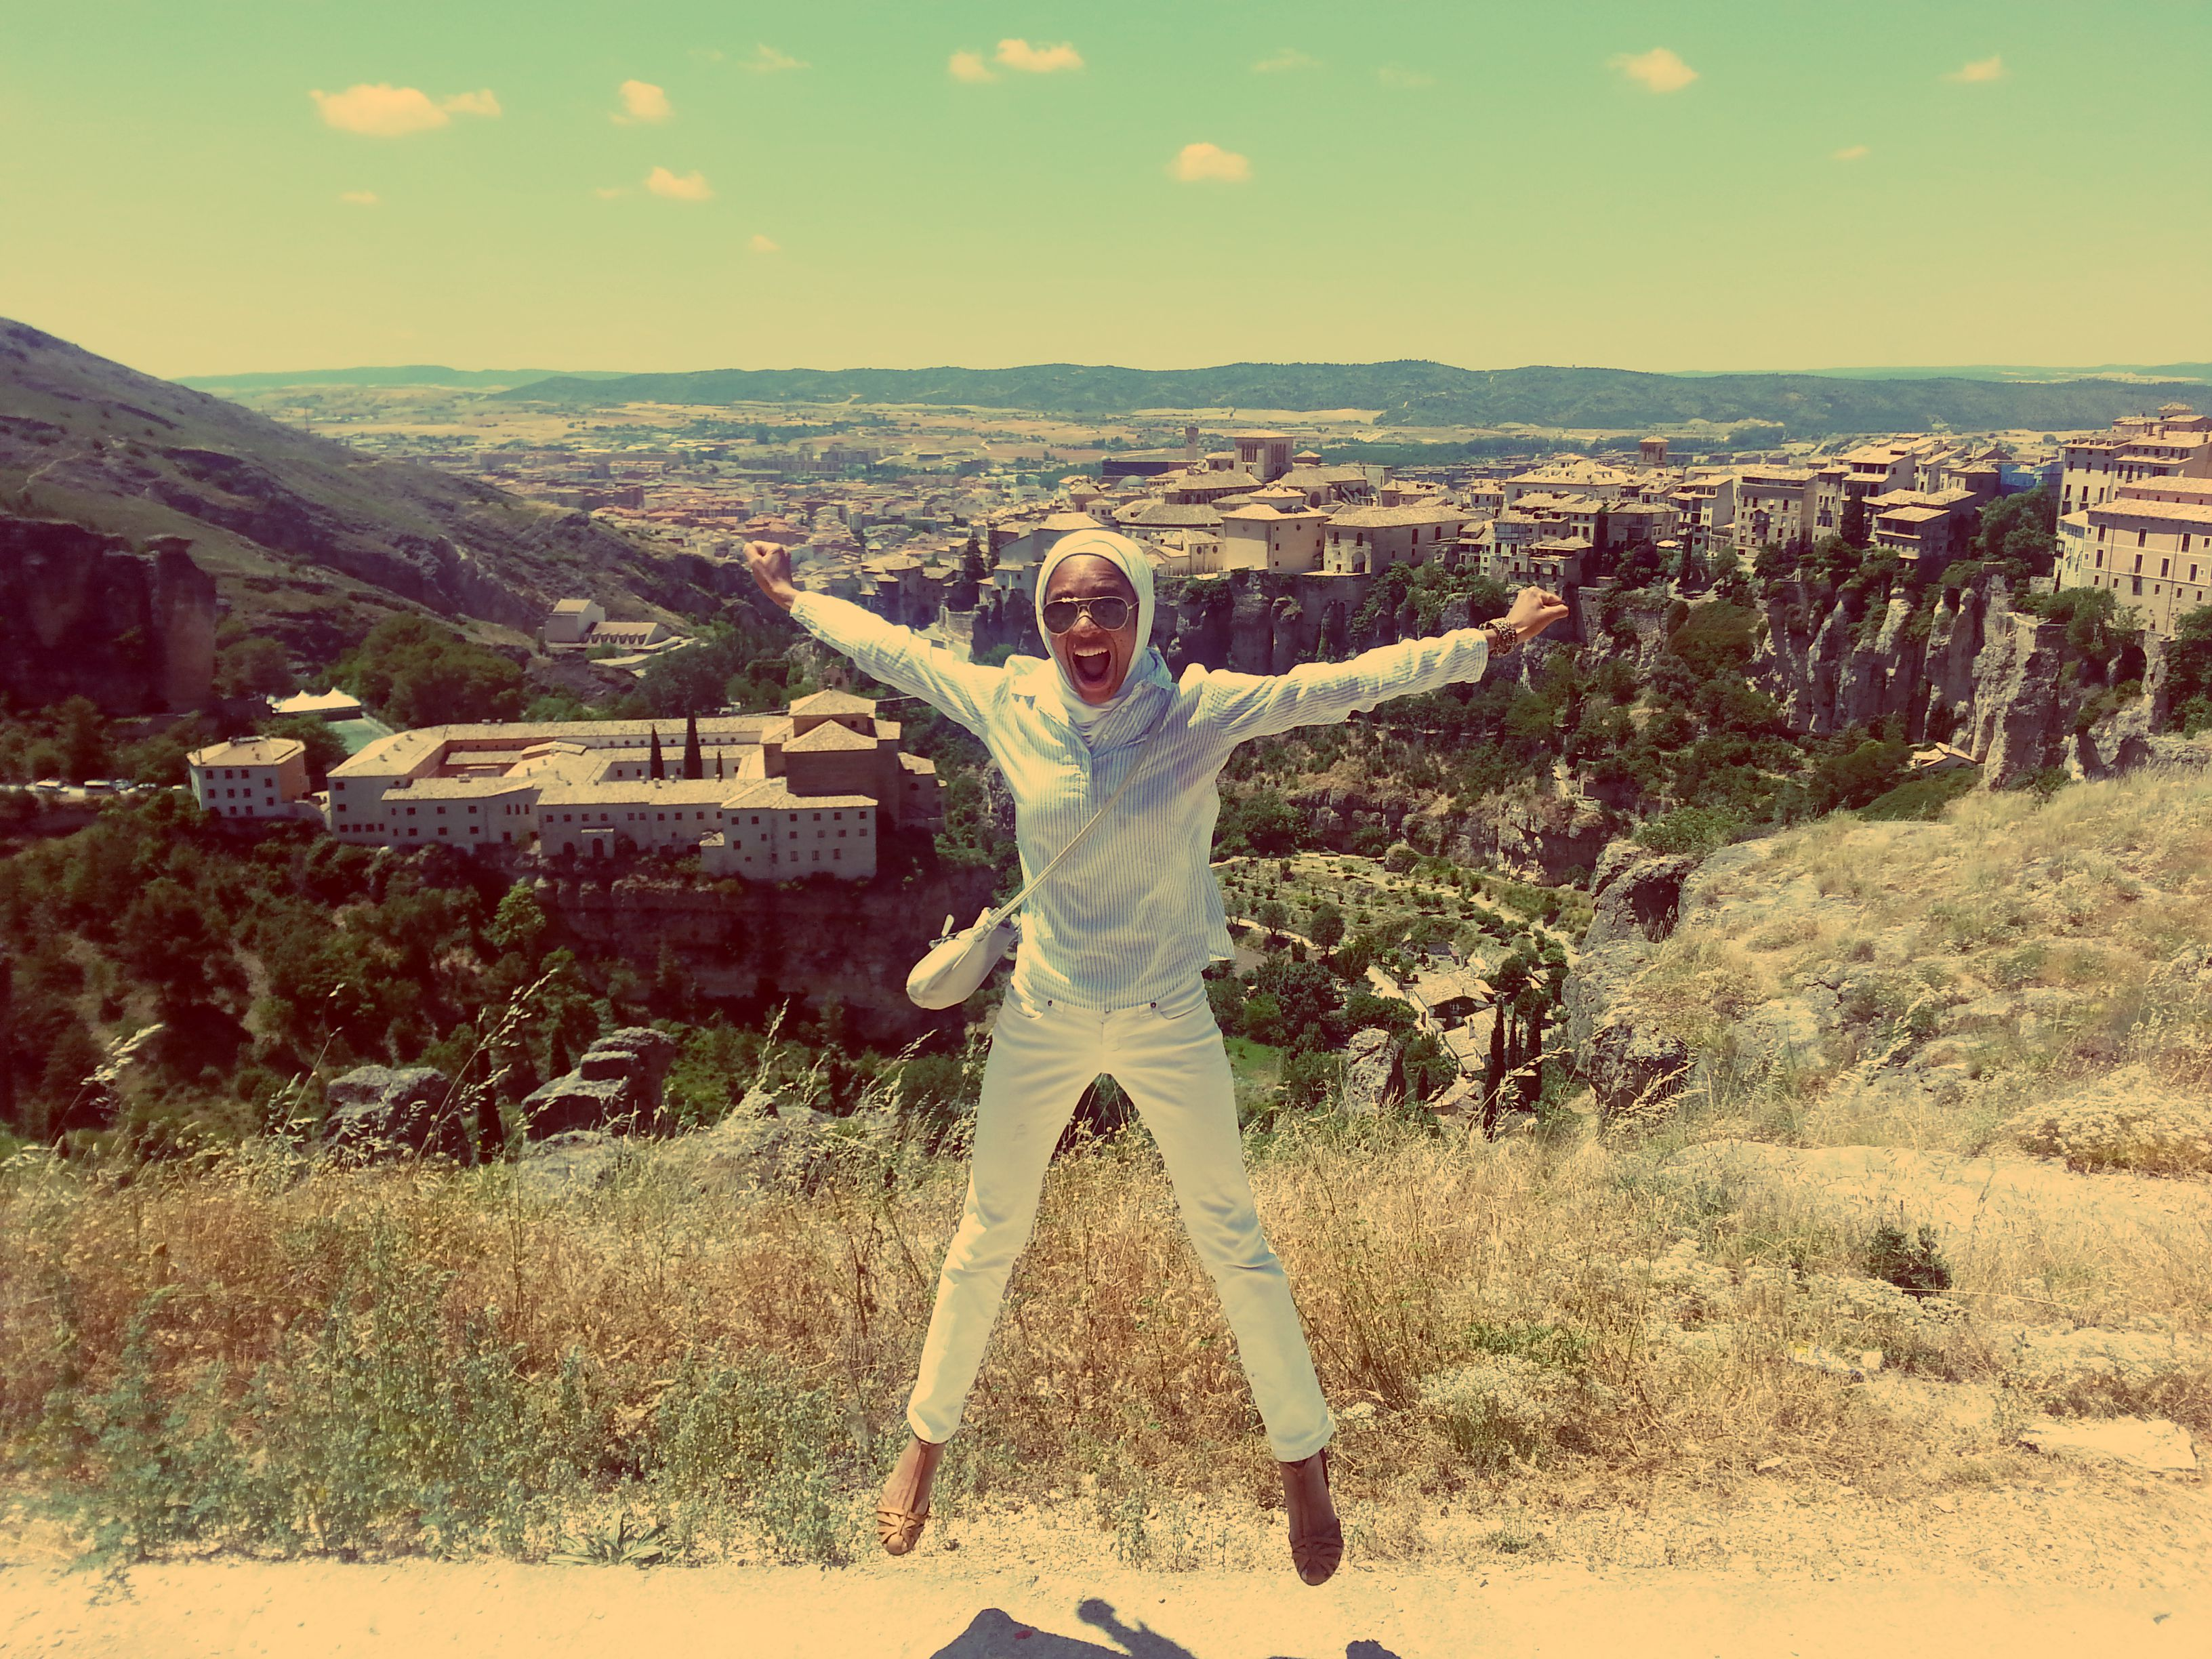 Jumping in Cuenca